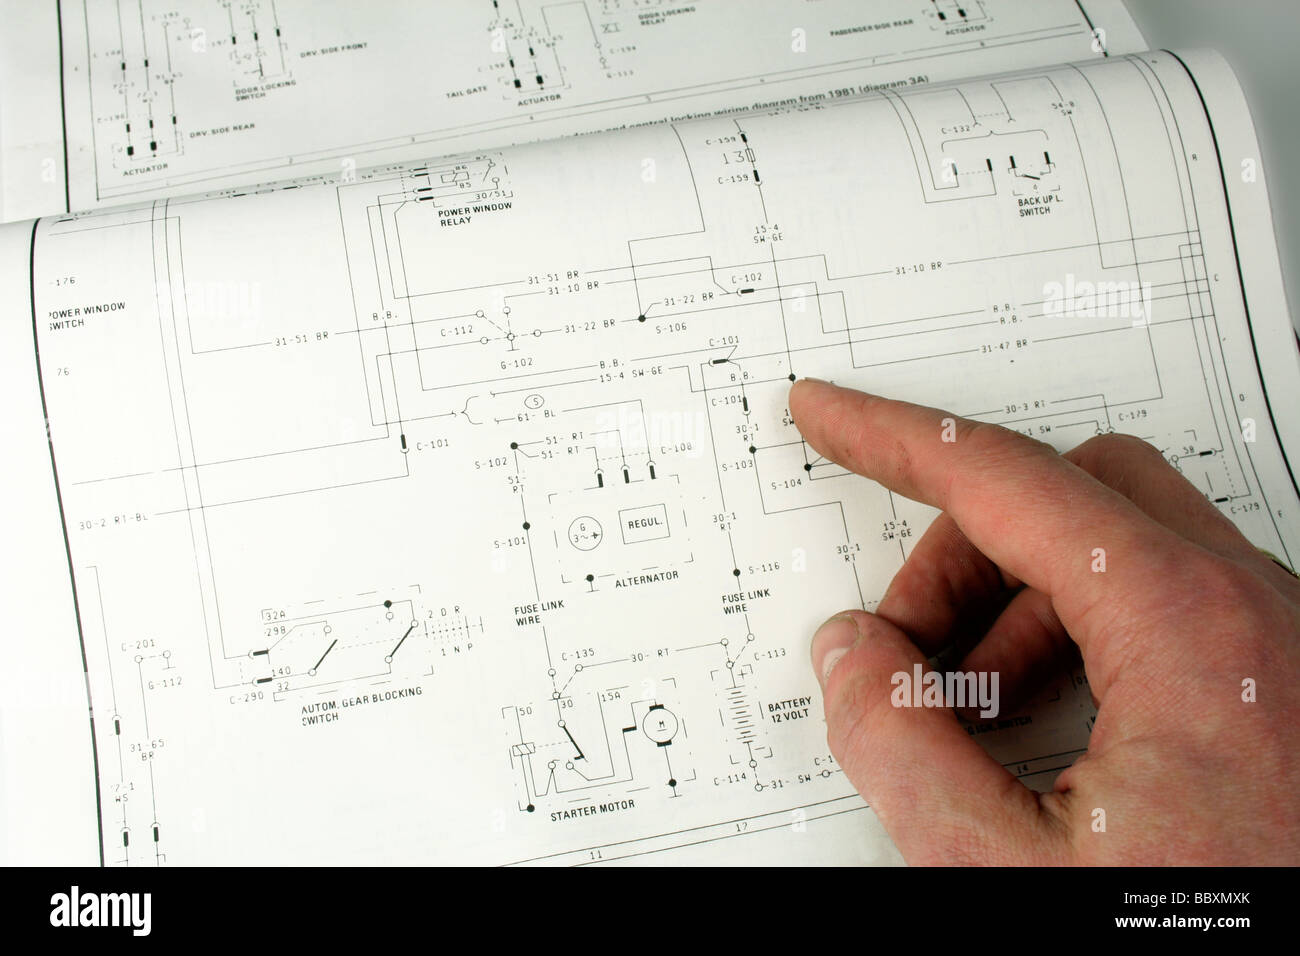 hight resolution of man referring to electrical wiring diagram